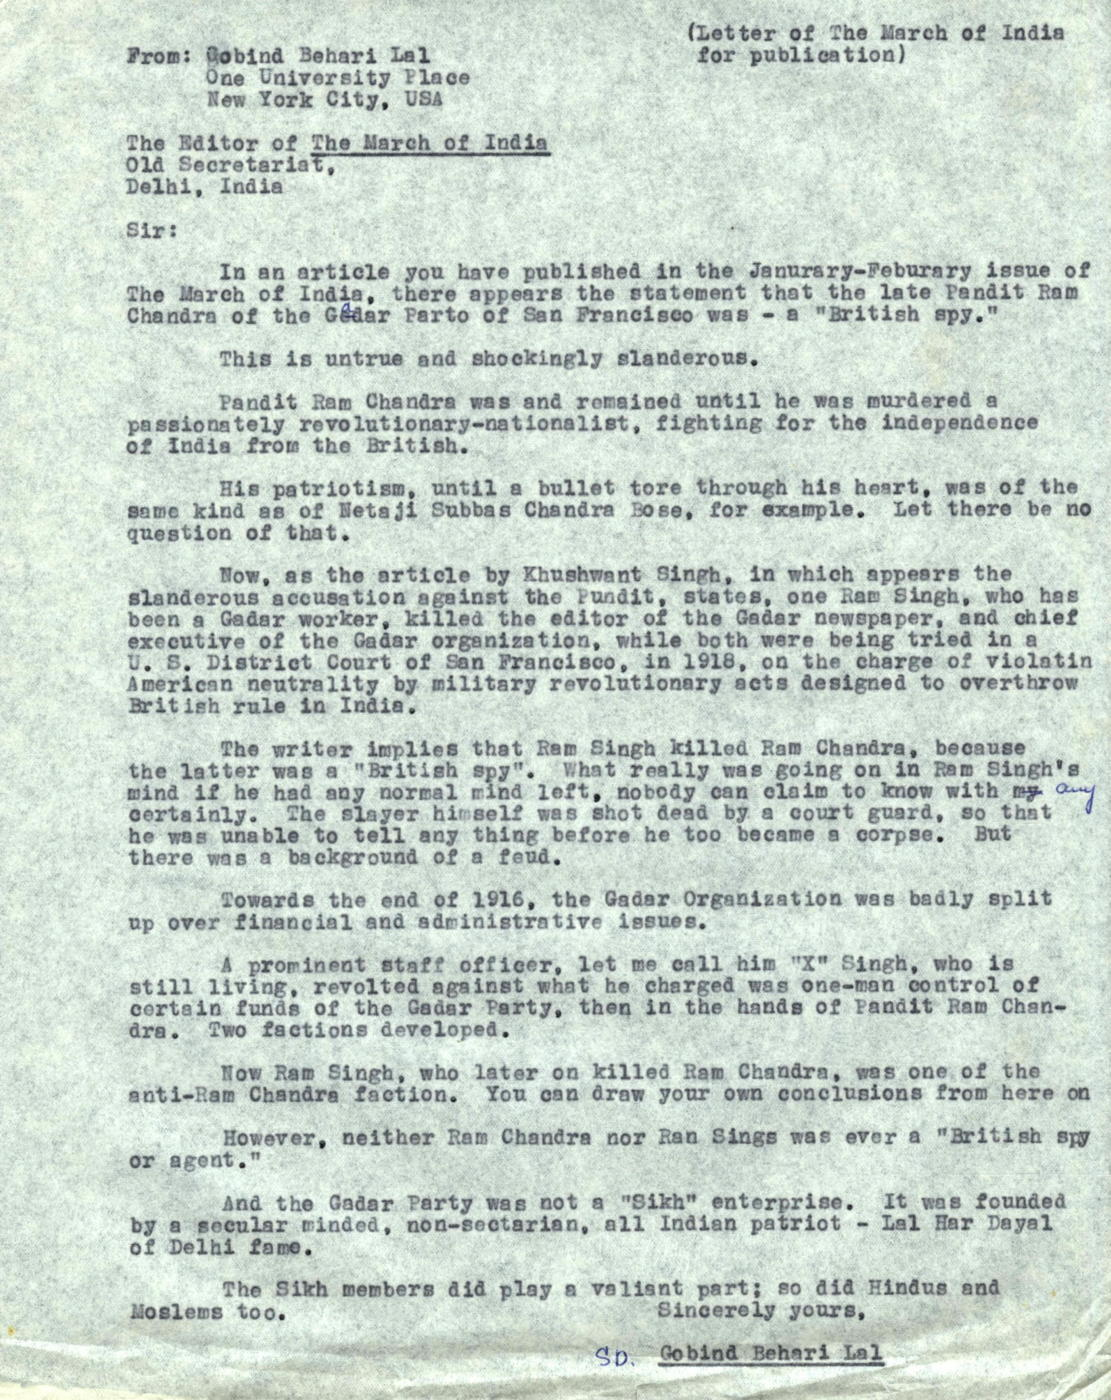 Letter From Gobind Behari Lal To Editor Of The March Of India